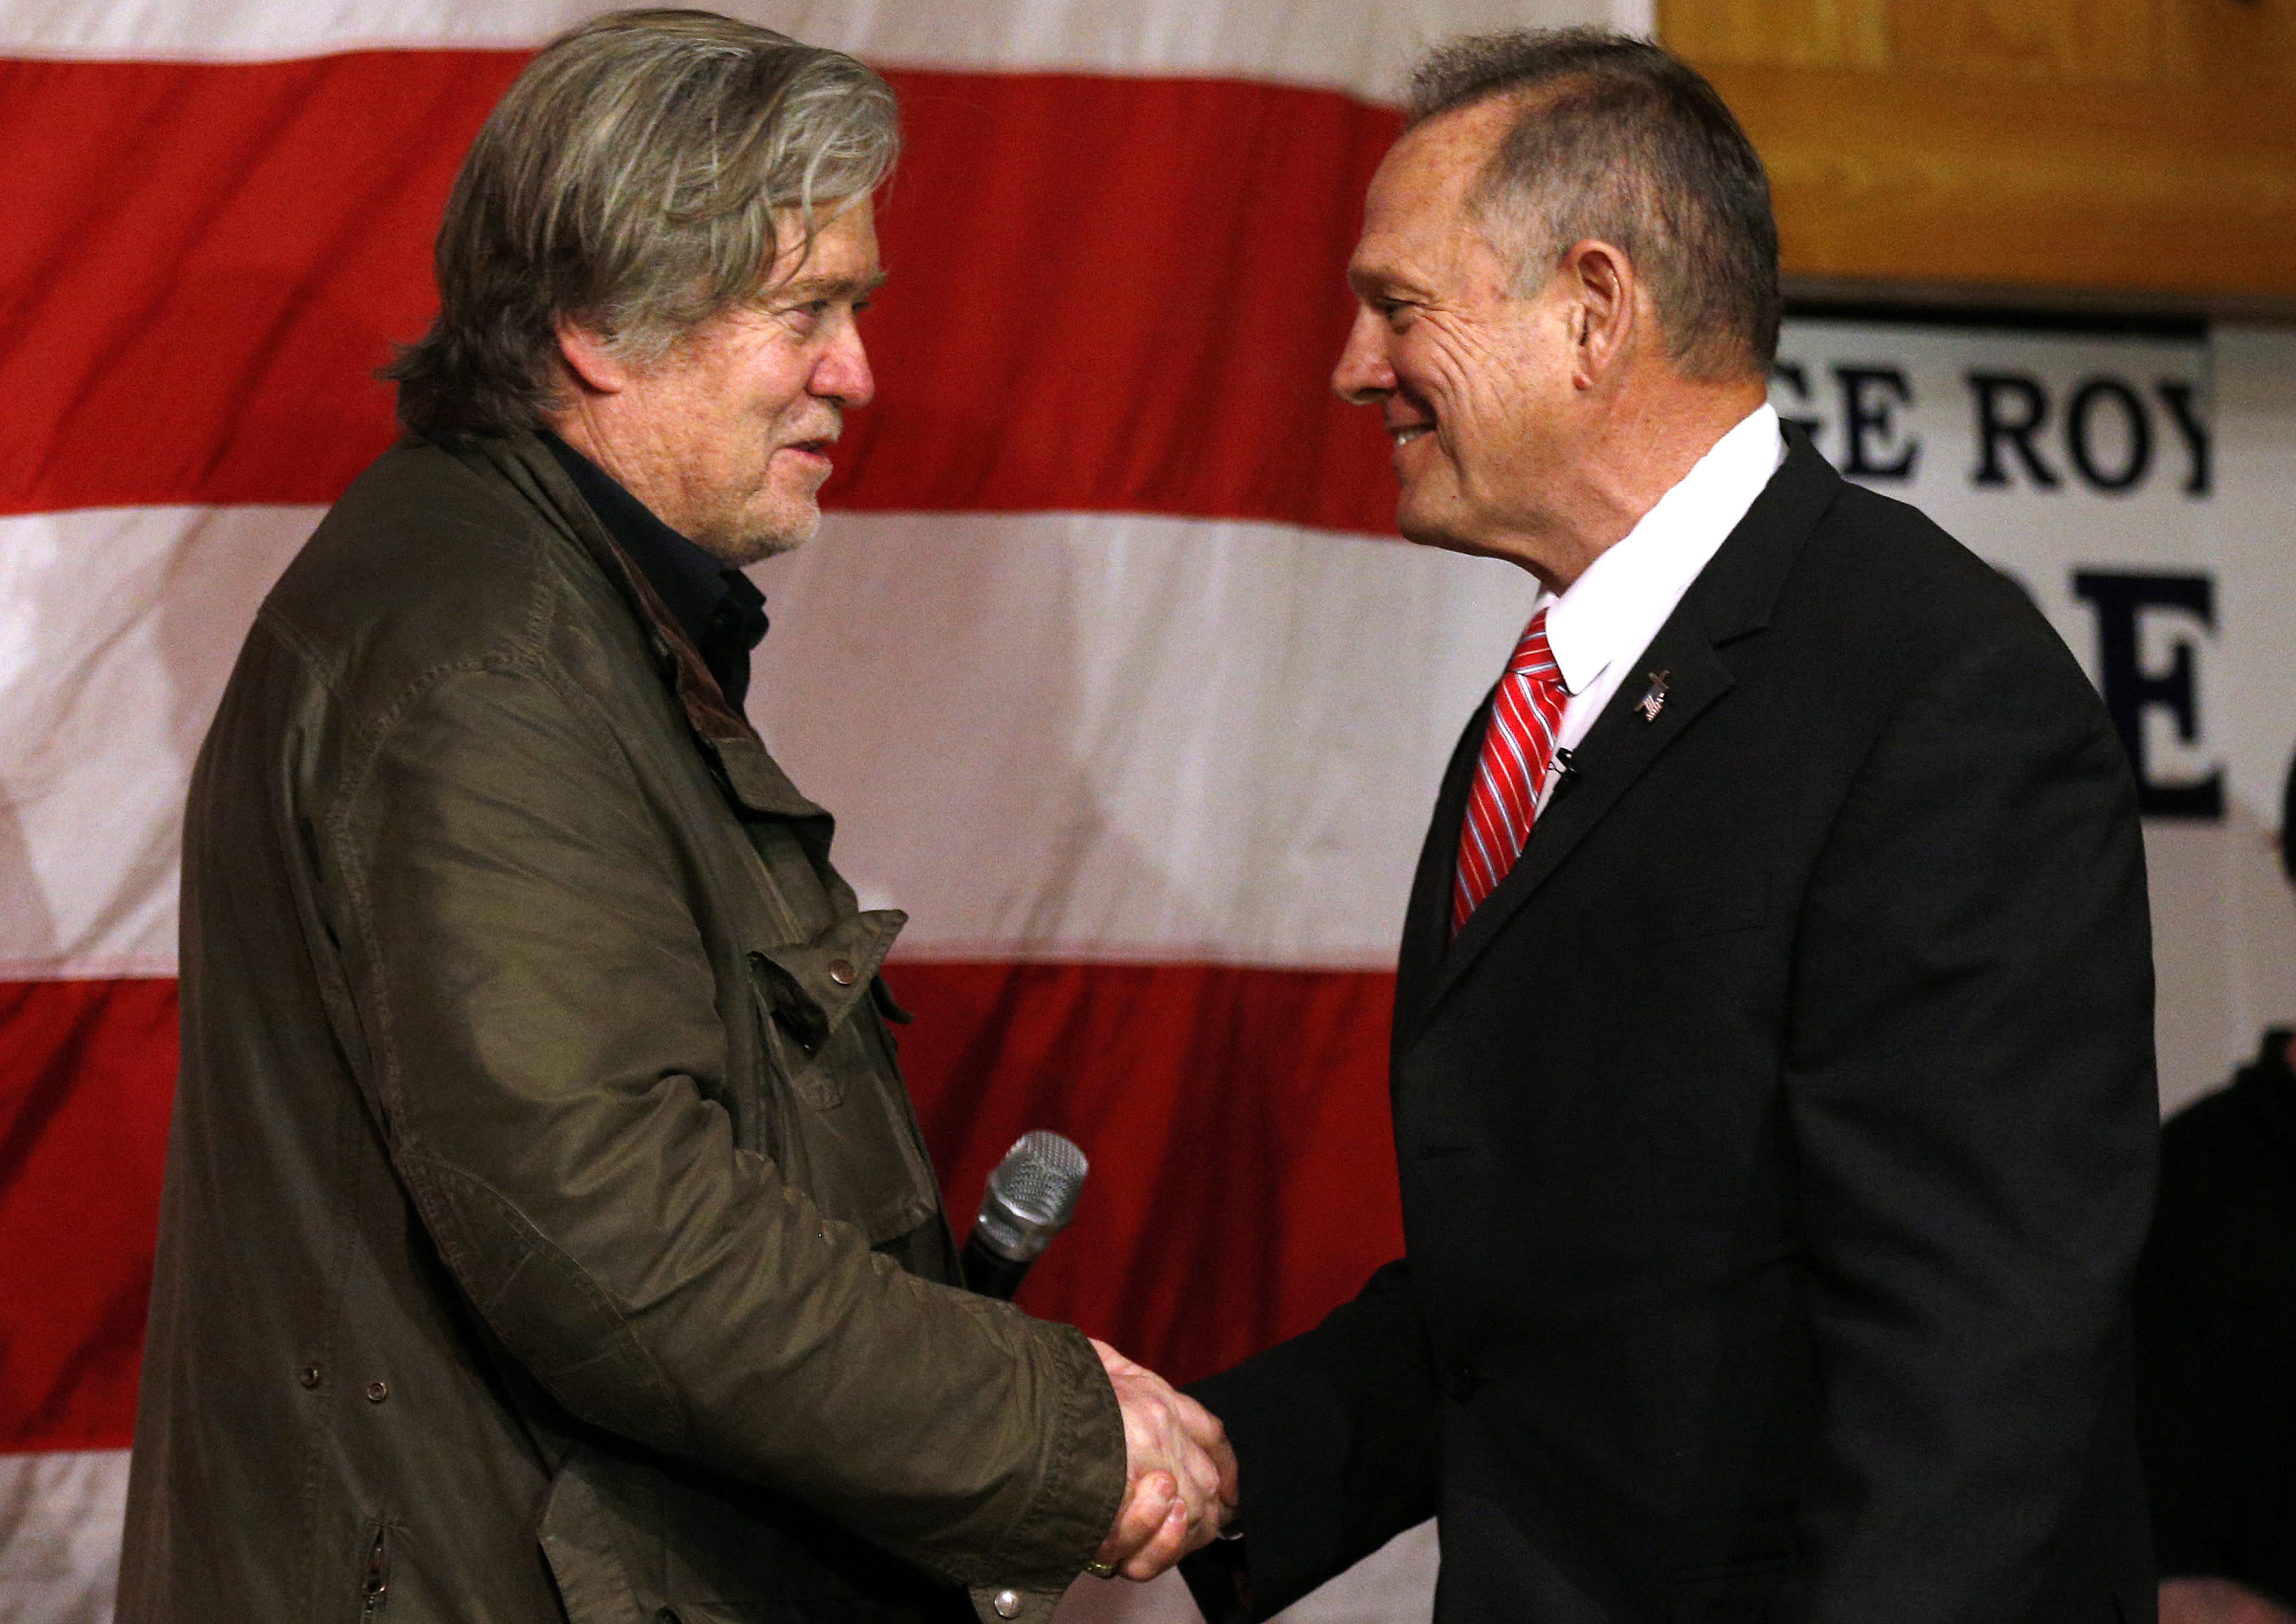 Steve Bannon, left, and Roy Moore